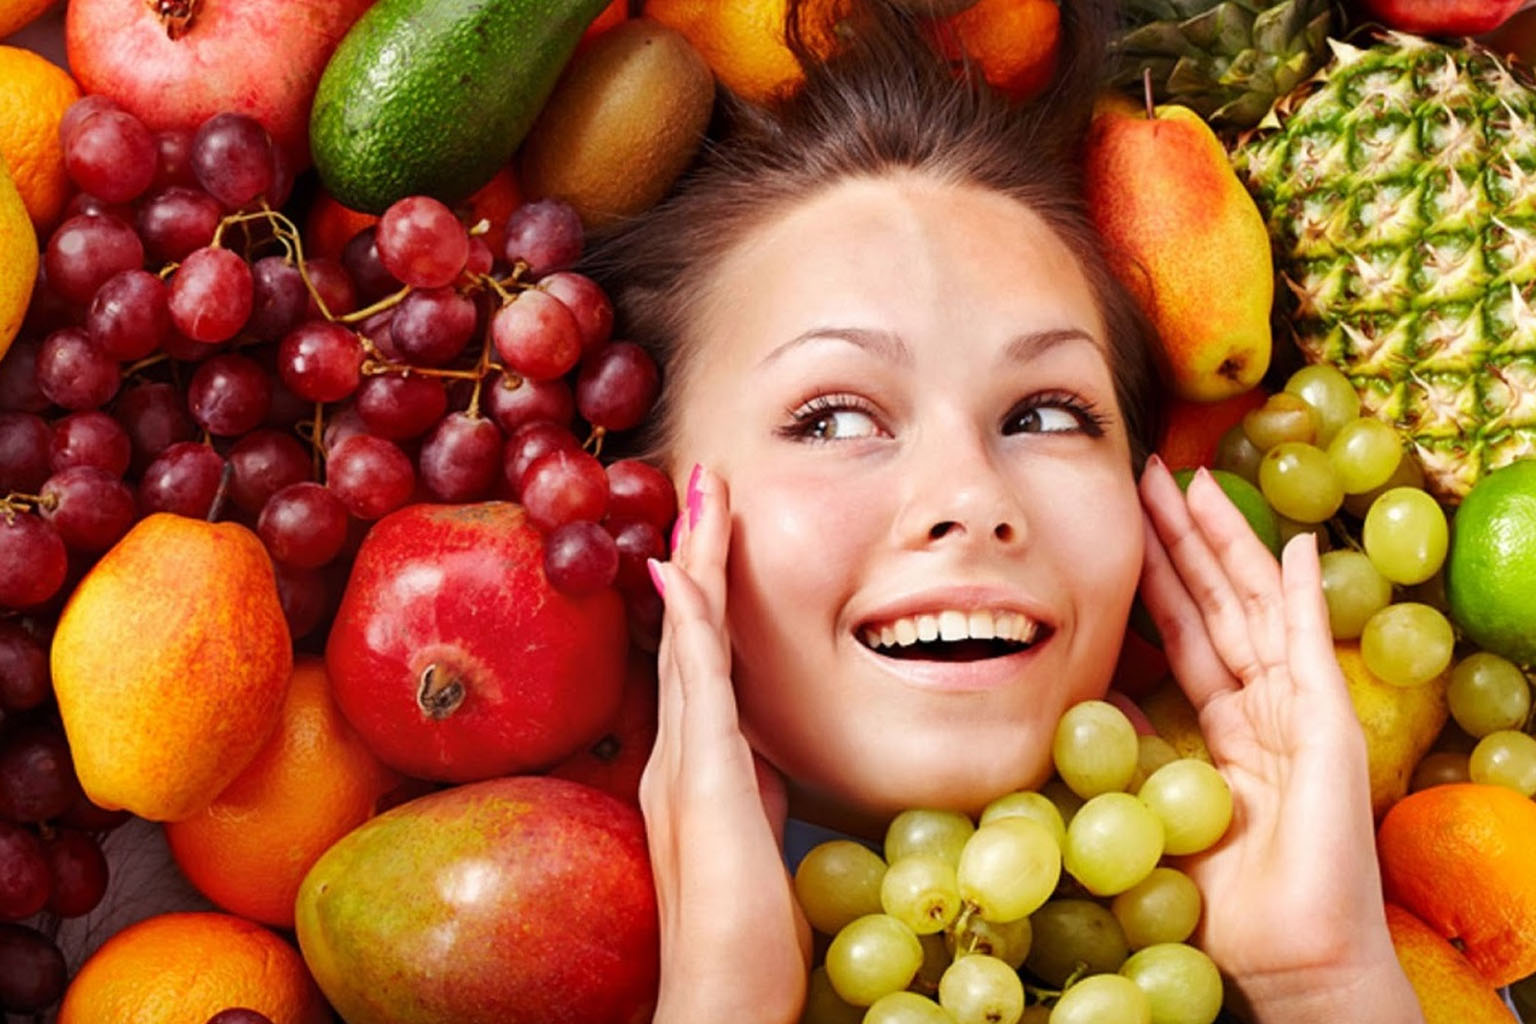 Nutrition tips for A Wrinkle Free